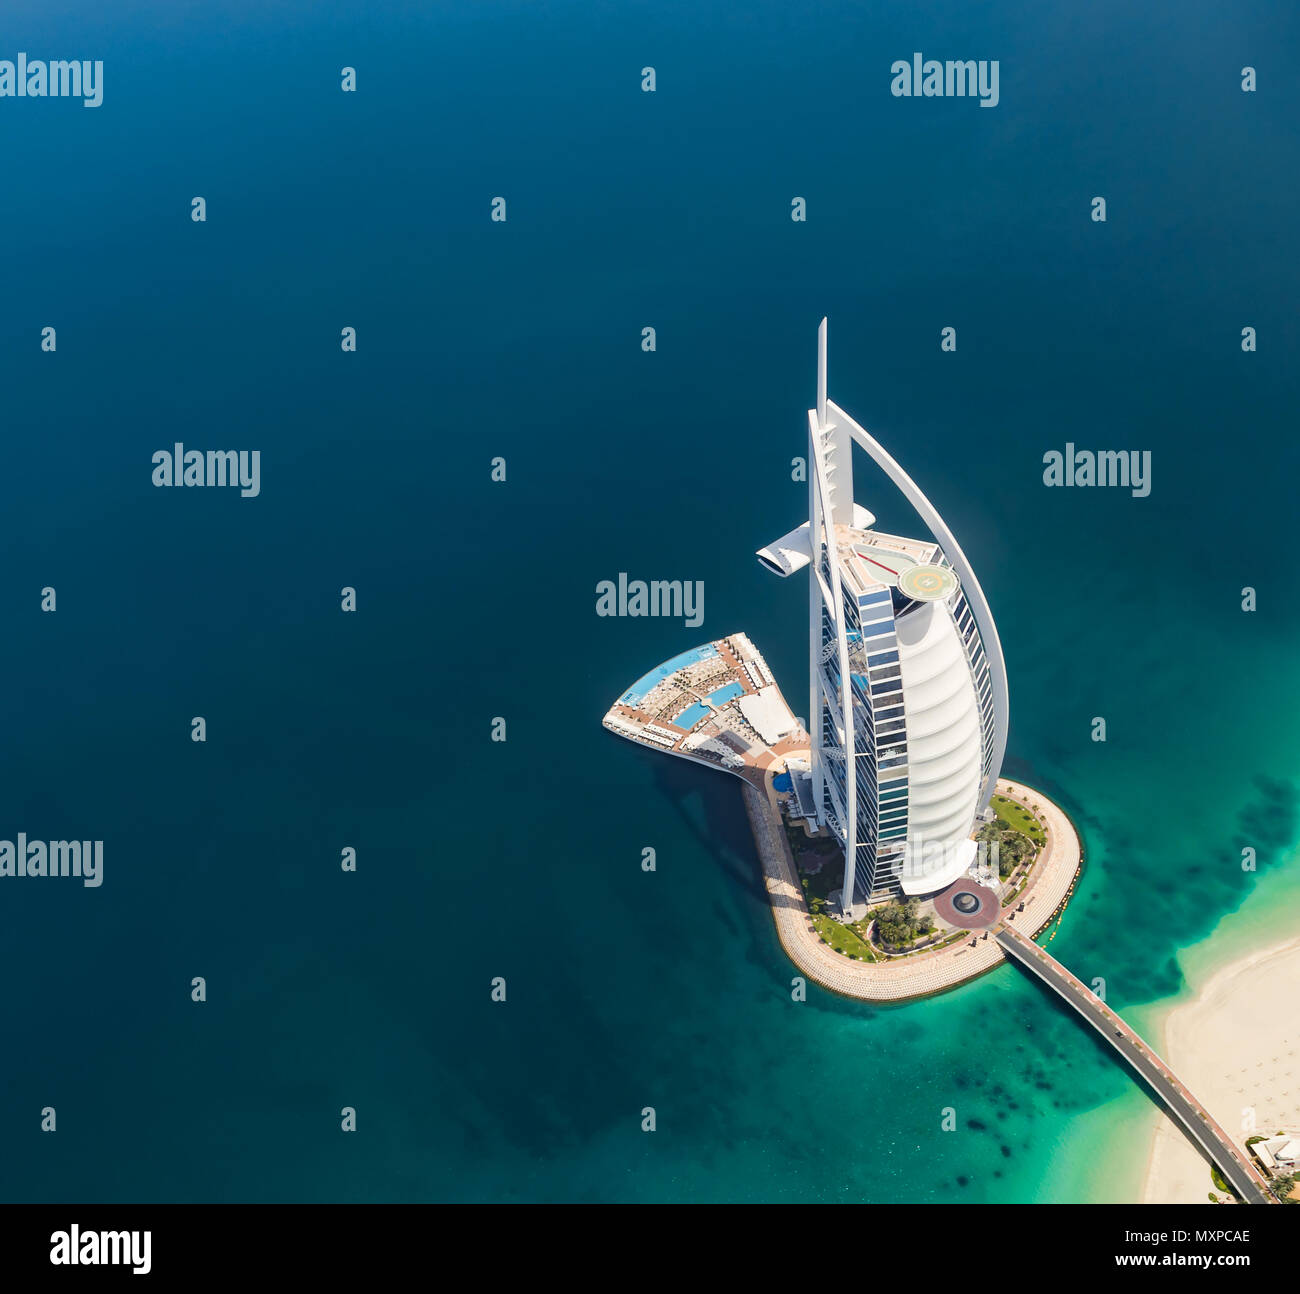 DUBAI, UAE - MARCH 2018: Aerial view of Burj Al Arab hotel in Dubai, one of the most luxury hotel in the world. - Stock Image